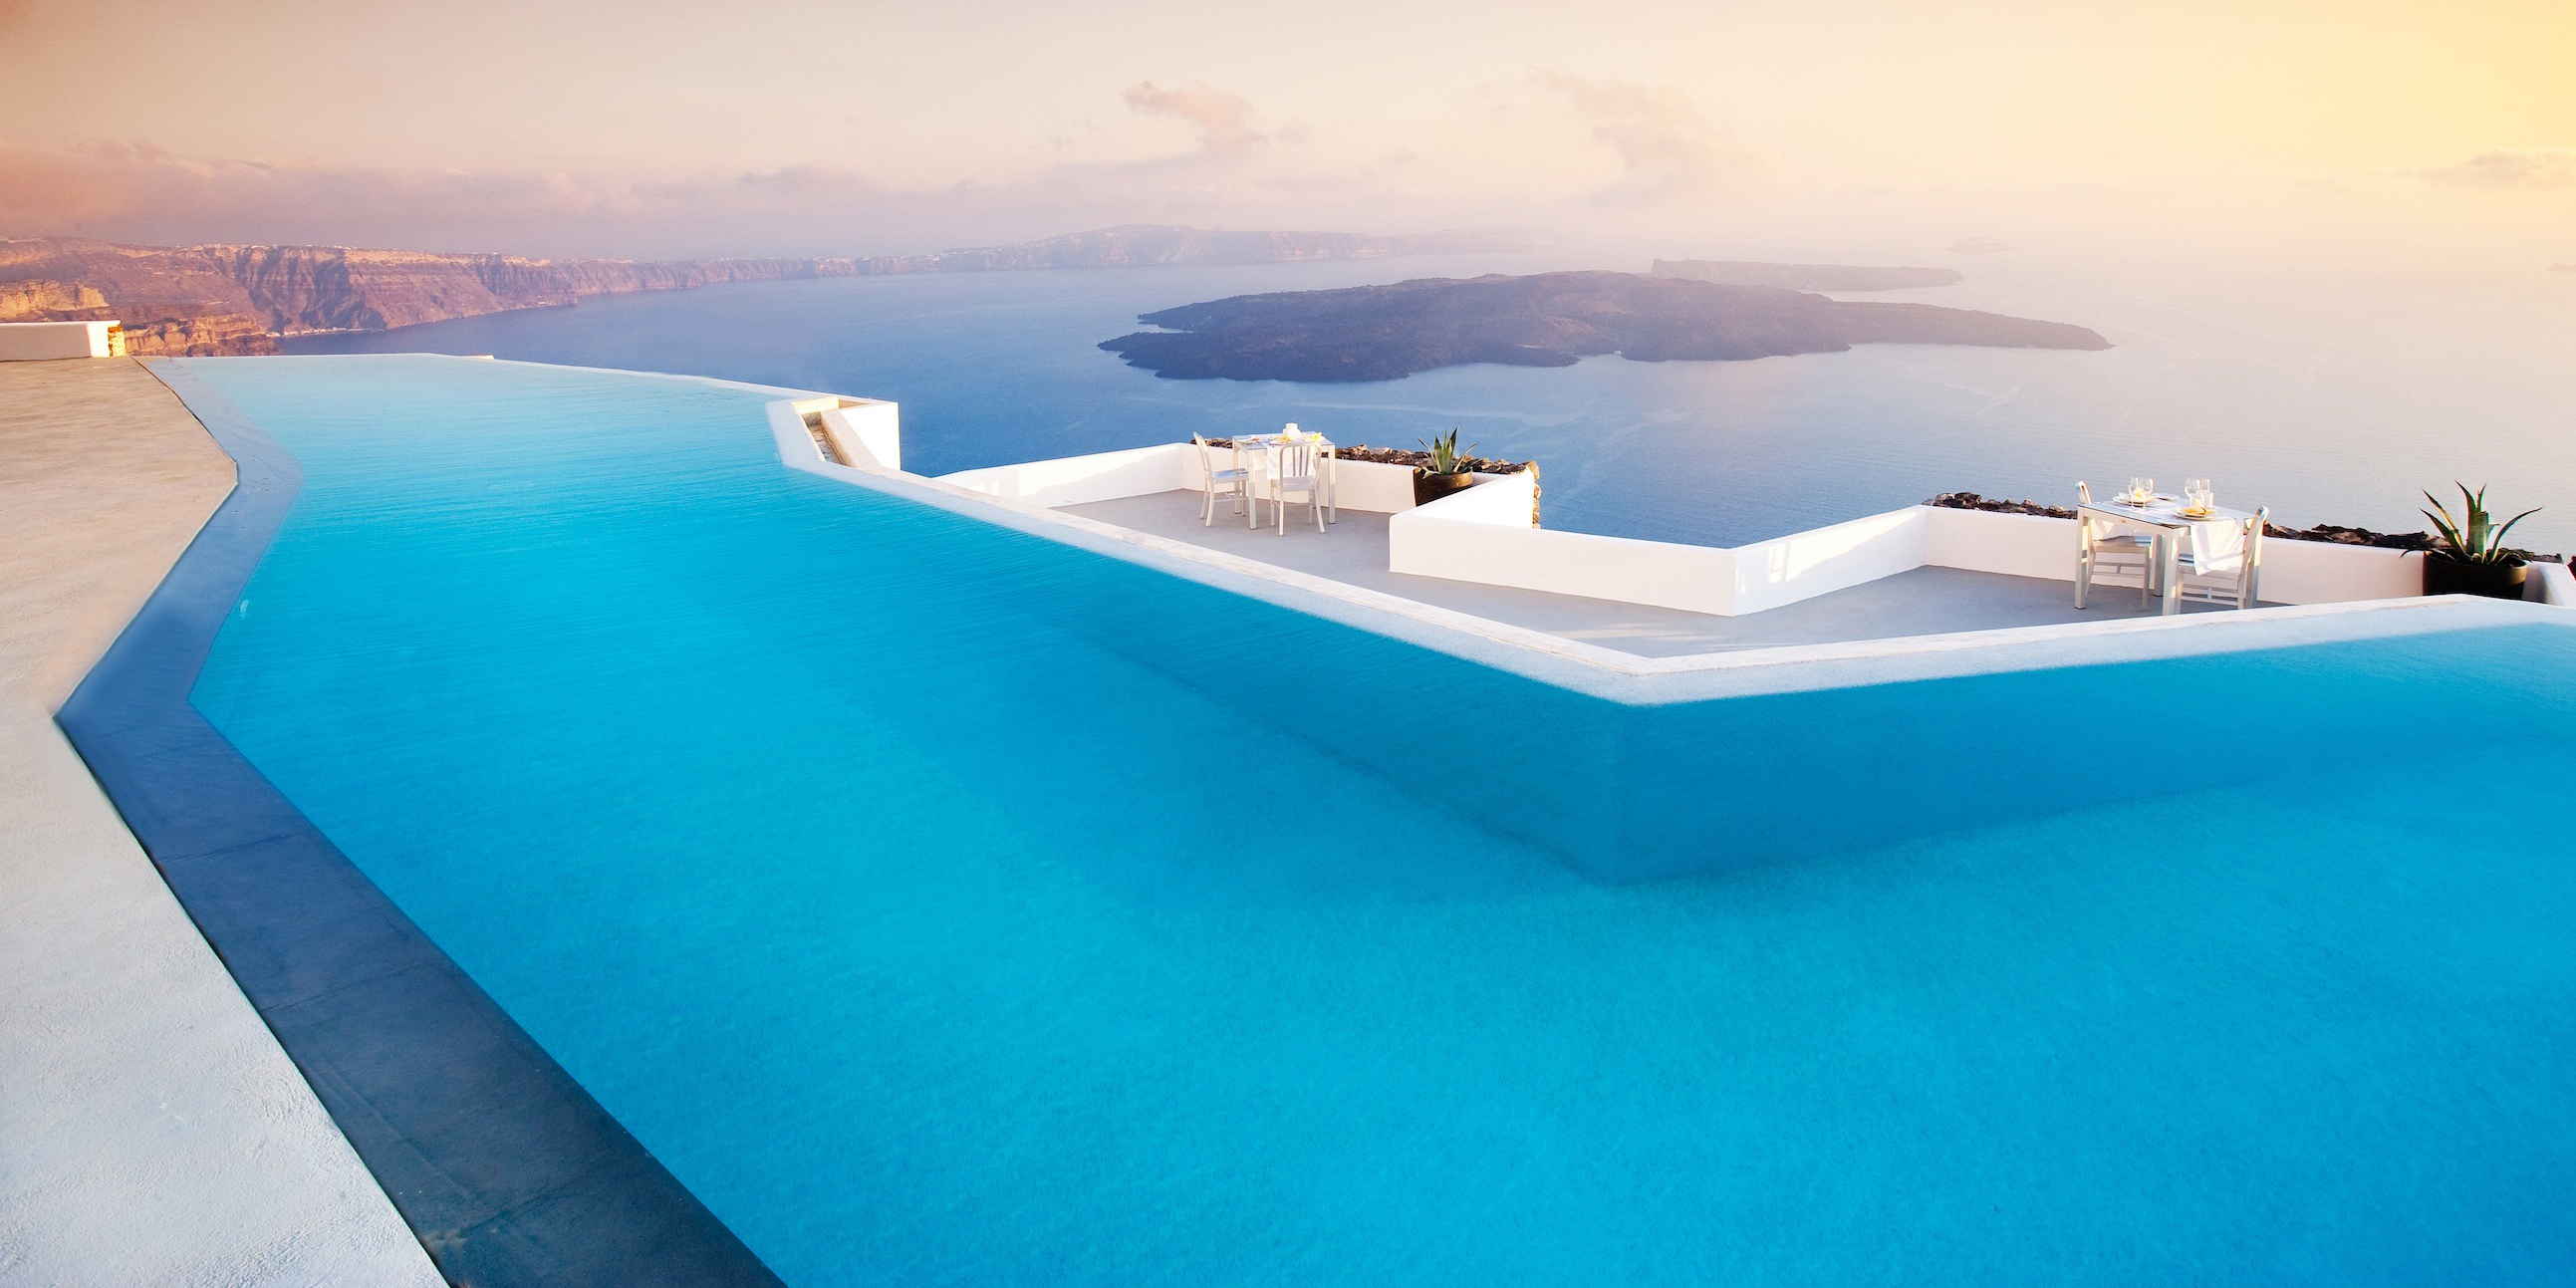 Santorini-landscape-resort-swimming-pool-beauty-luxury-hd-wallpaper